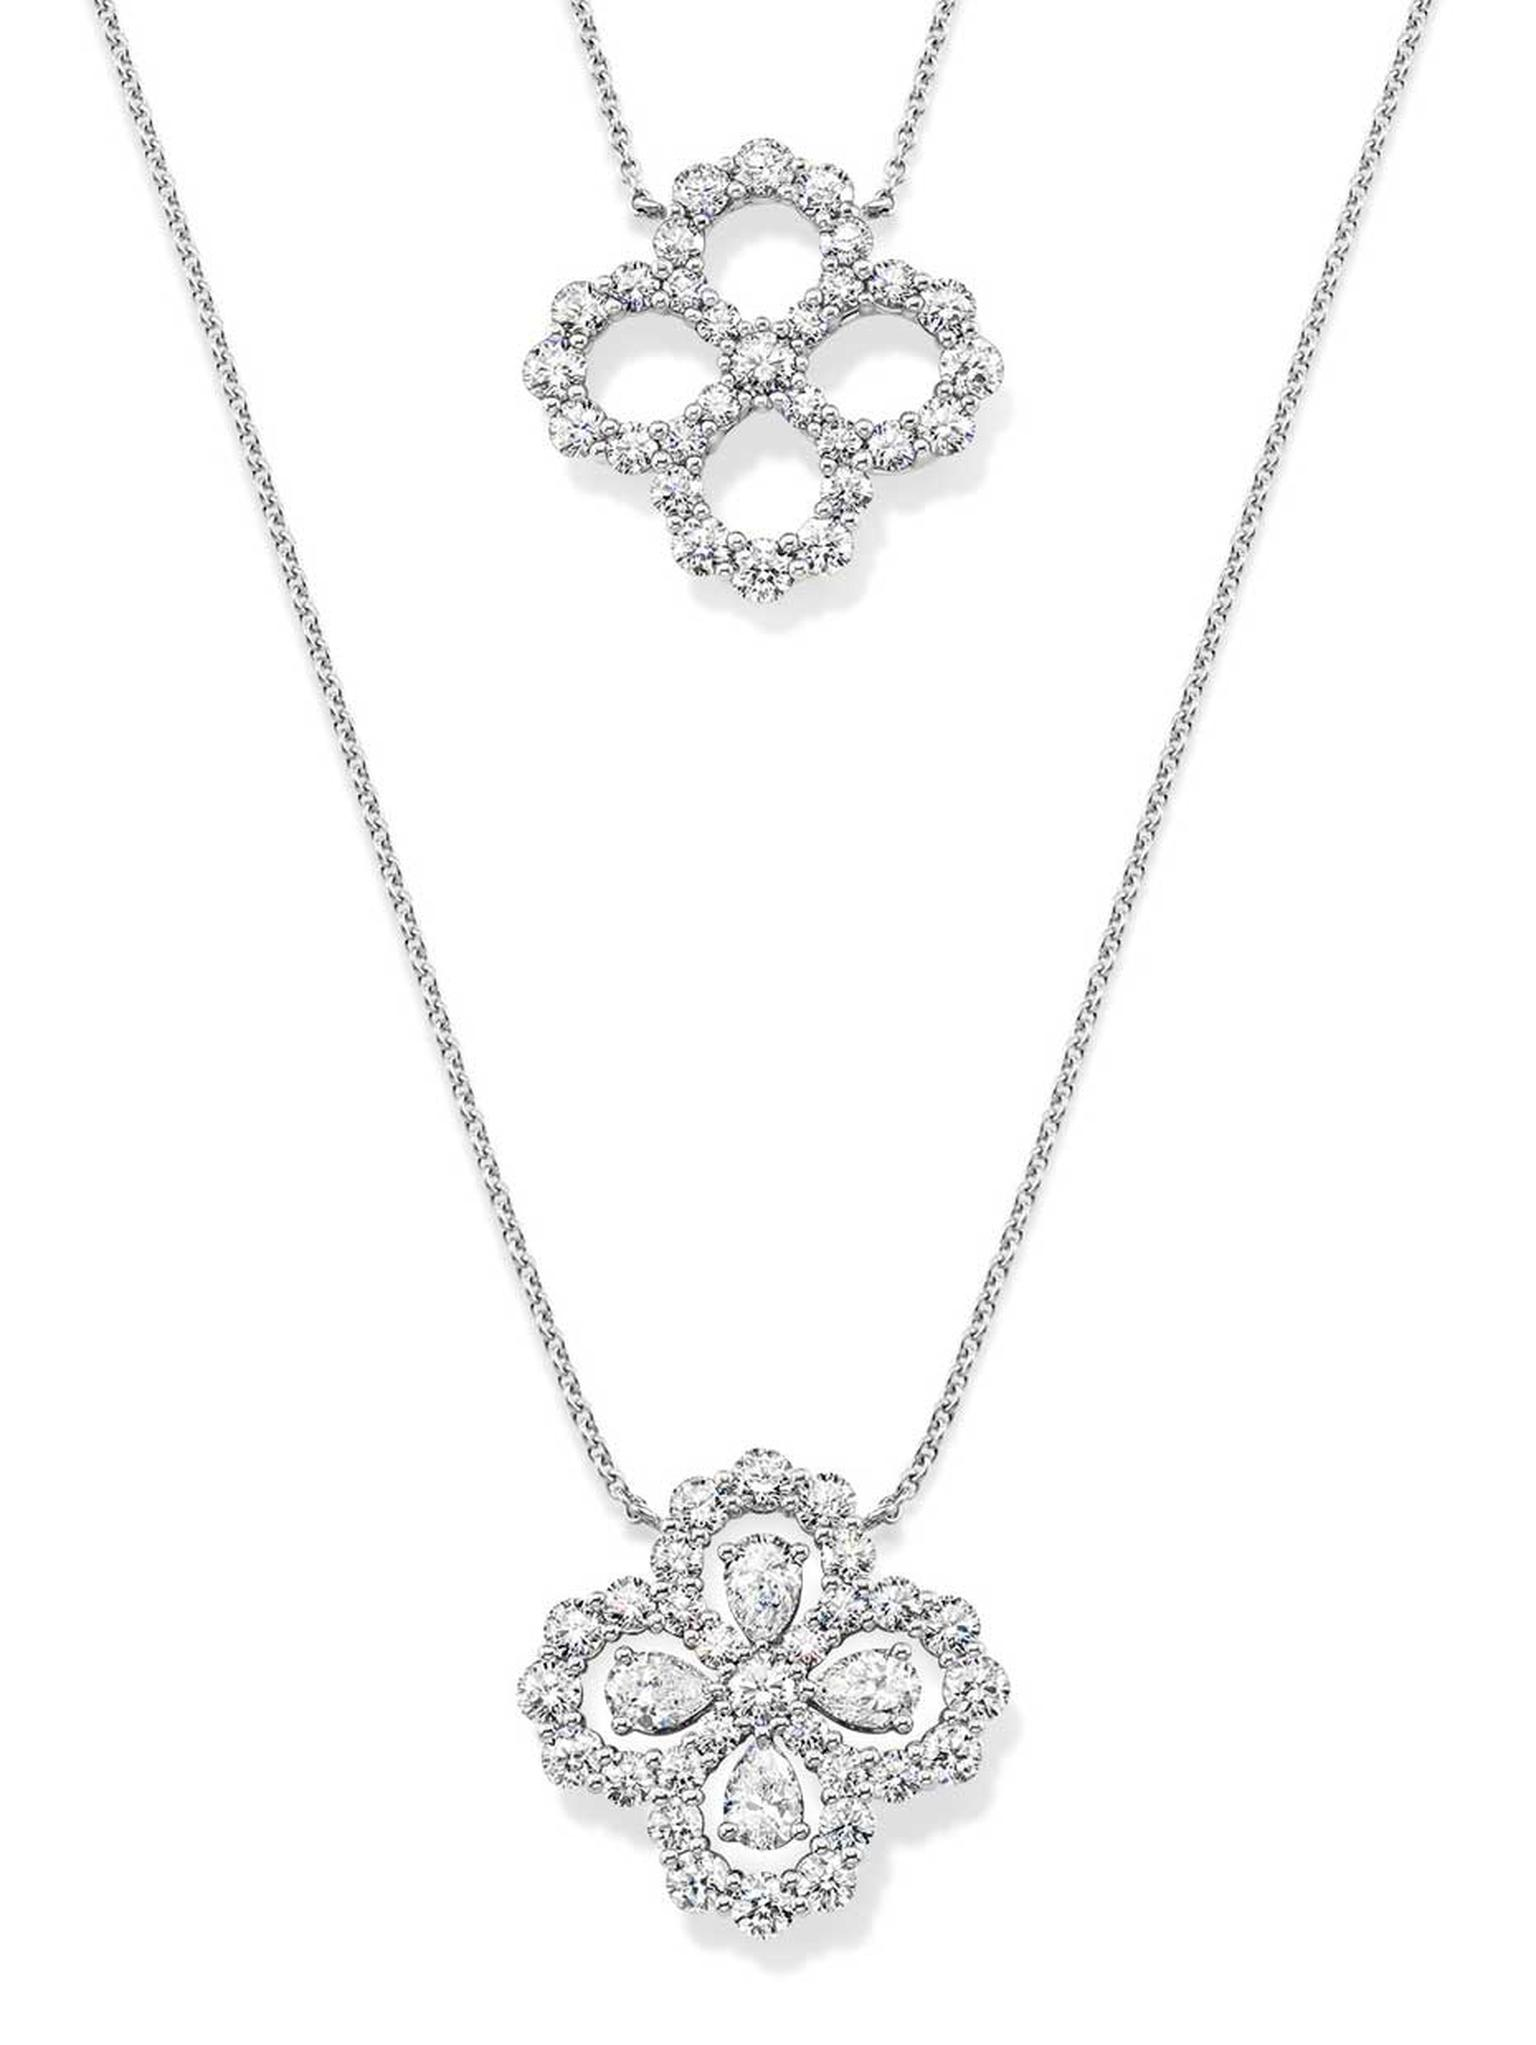 Harry Winston platinum Diamond Loop collection necklaces.